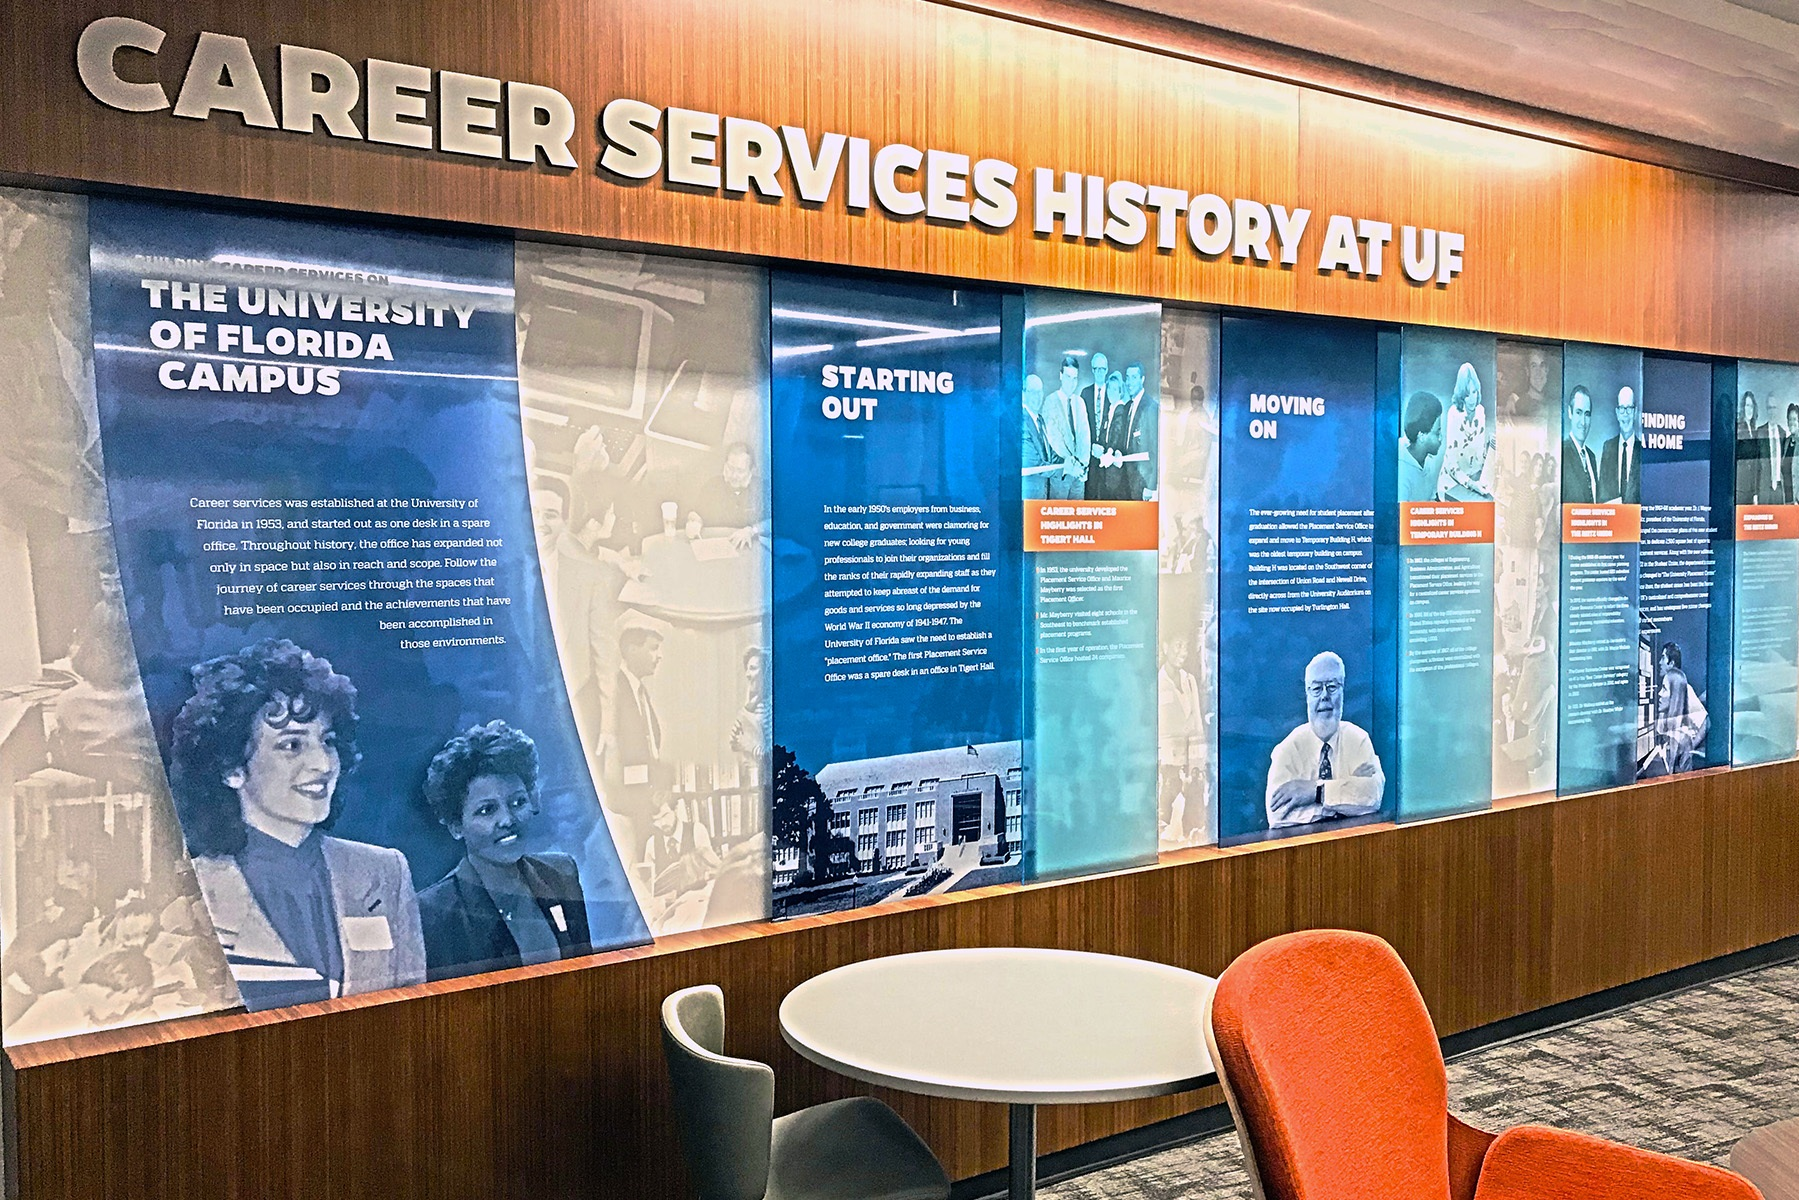 Reitz Union Career Connections Center, University of Florida